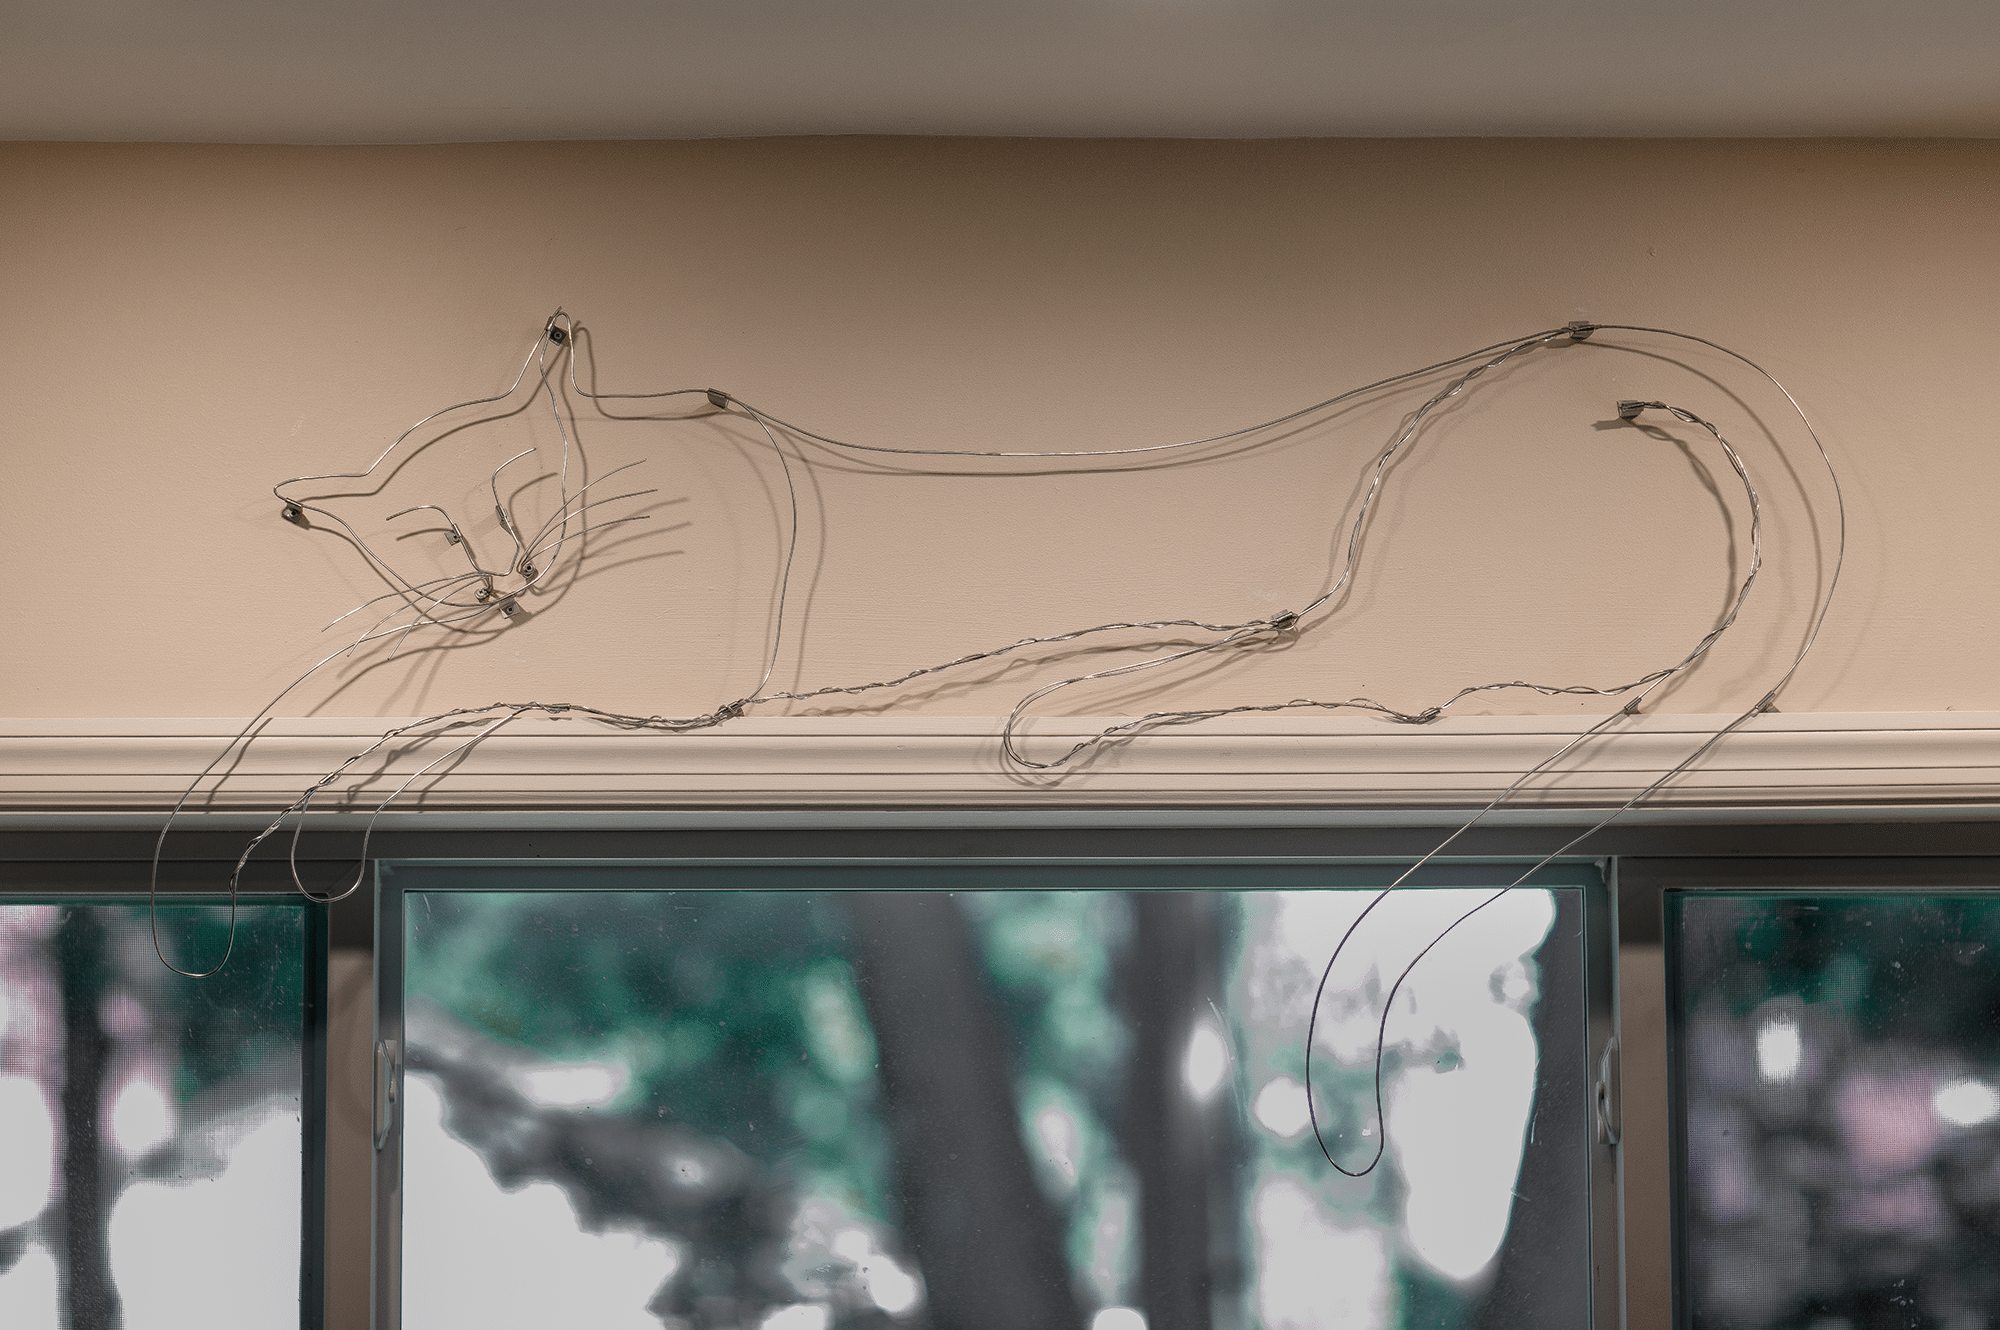 wire cat resting above a door